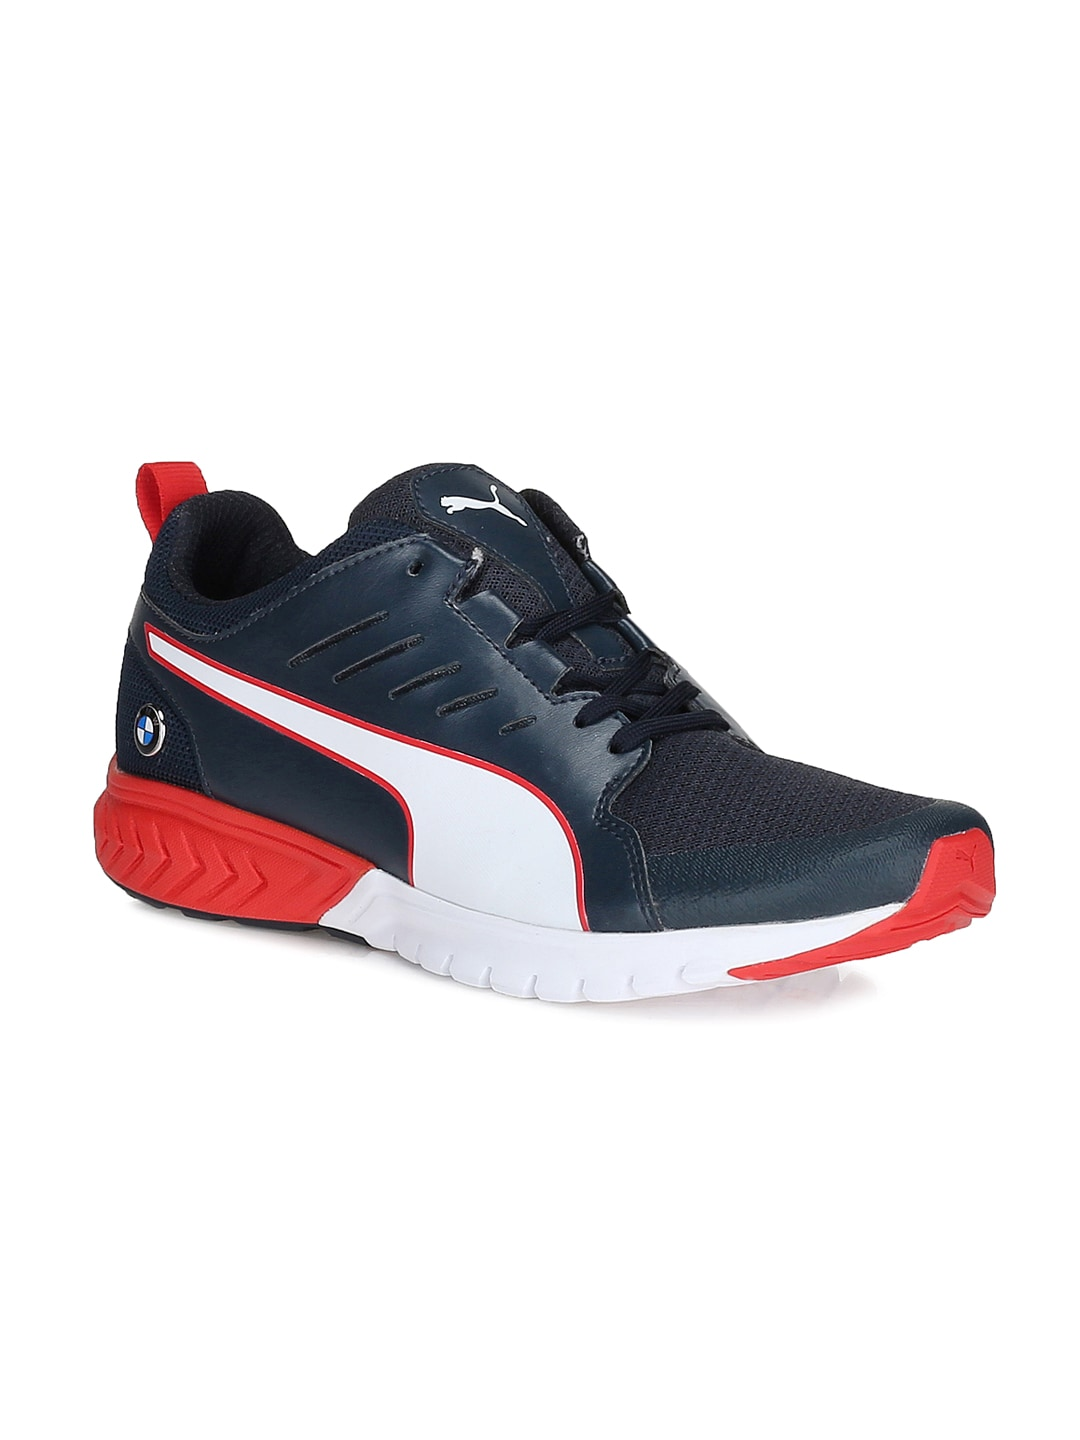 Puma Sneakers - Buy Puma Sneakers Online in India d49953897